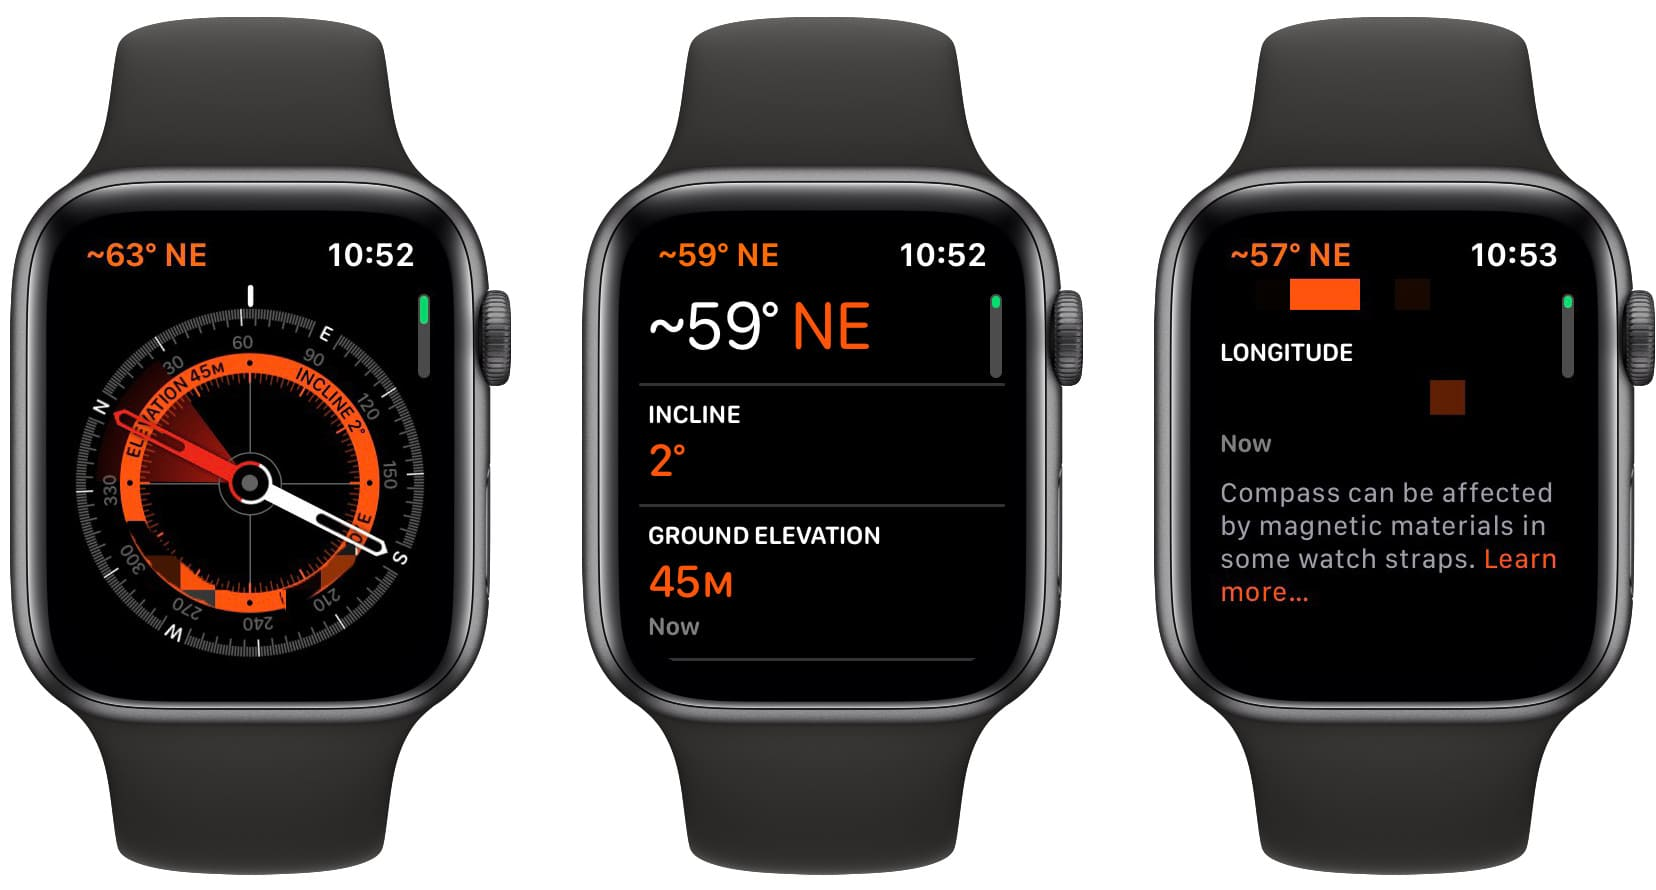 The new Watch OS 6 compass.